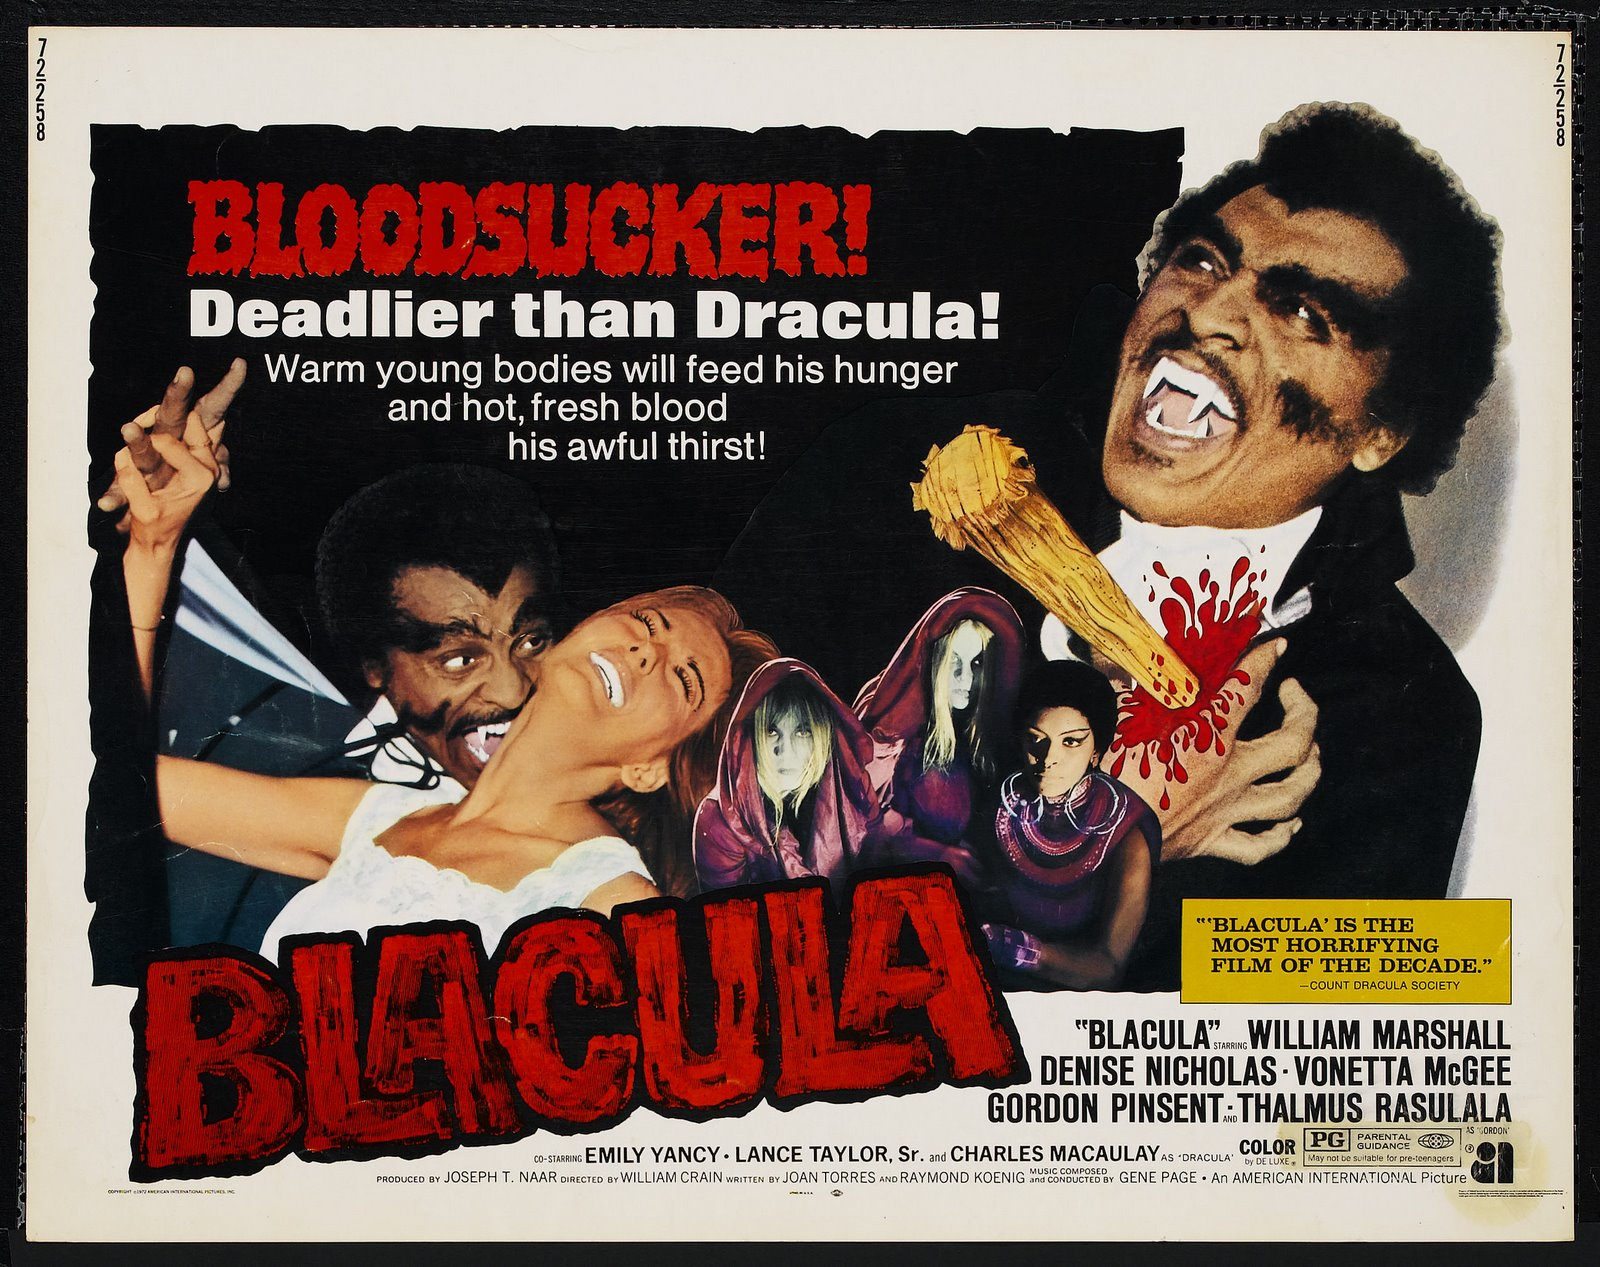 Blacula Wallpaper and Background Image 1600x1267 ID302361 1600x1267